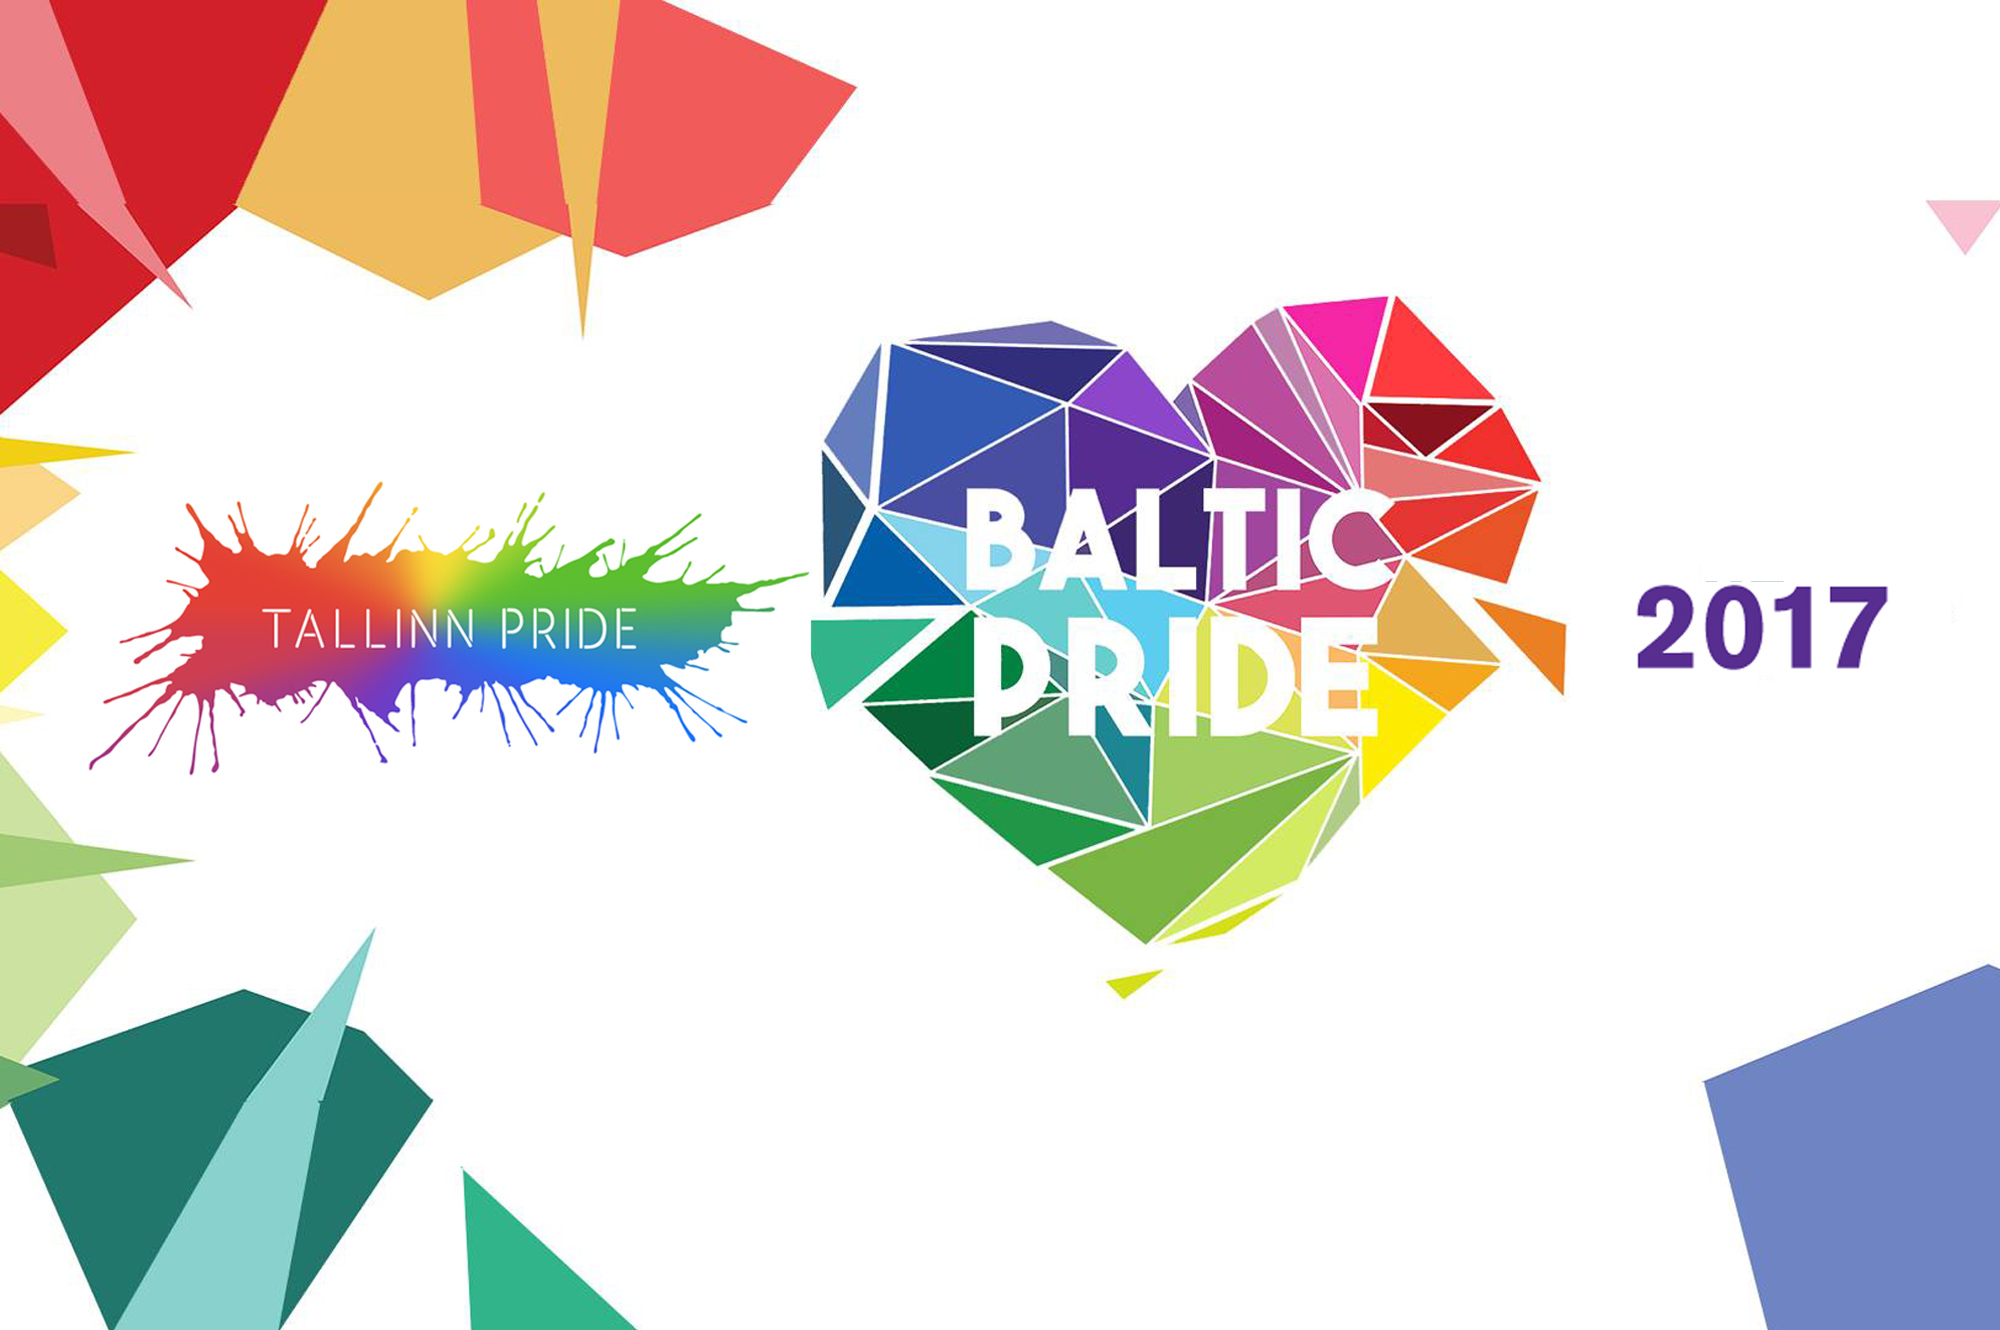 Gay Couple Baltic Pride 2017 Tallinn Estonia © CoupleofMen.com